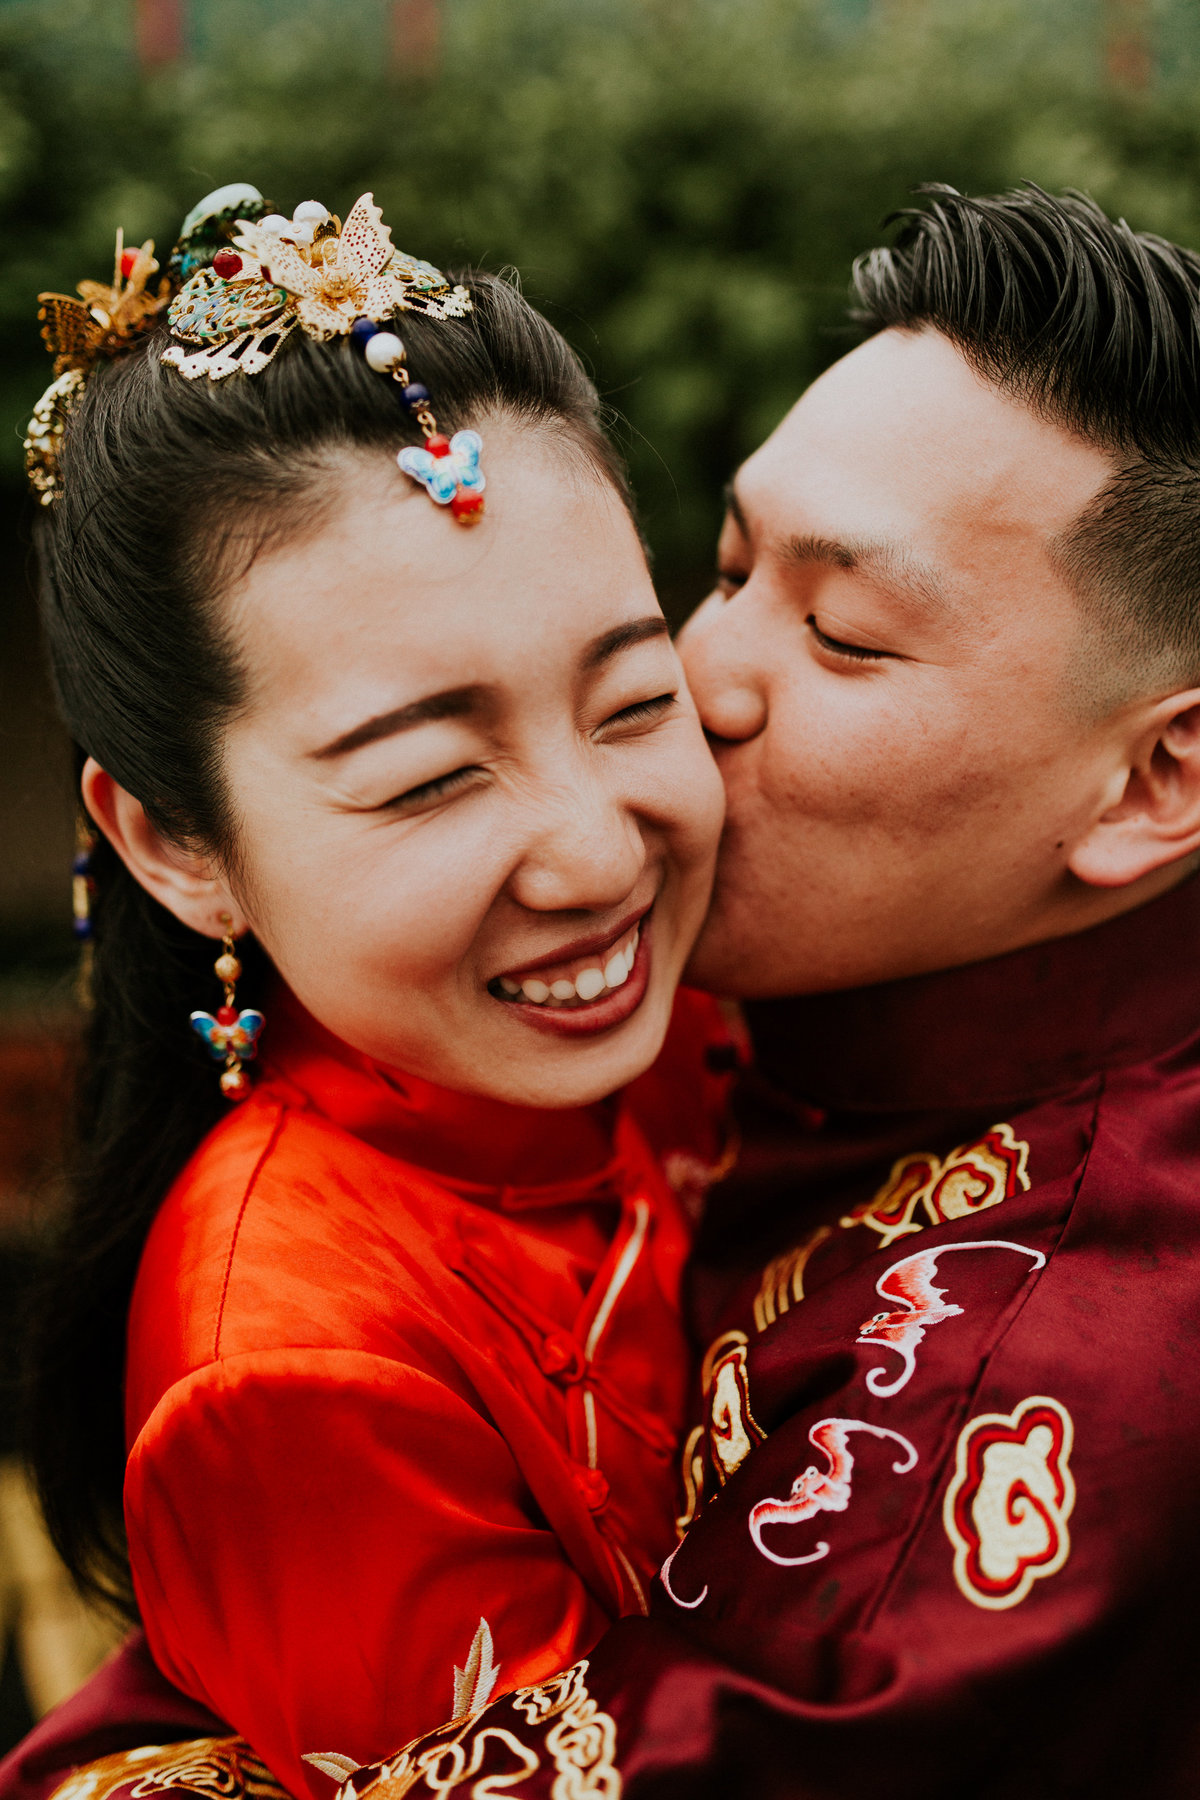 A groom kisses the bride on the cheek as she smiles in their bright red garments